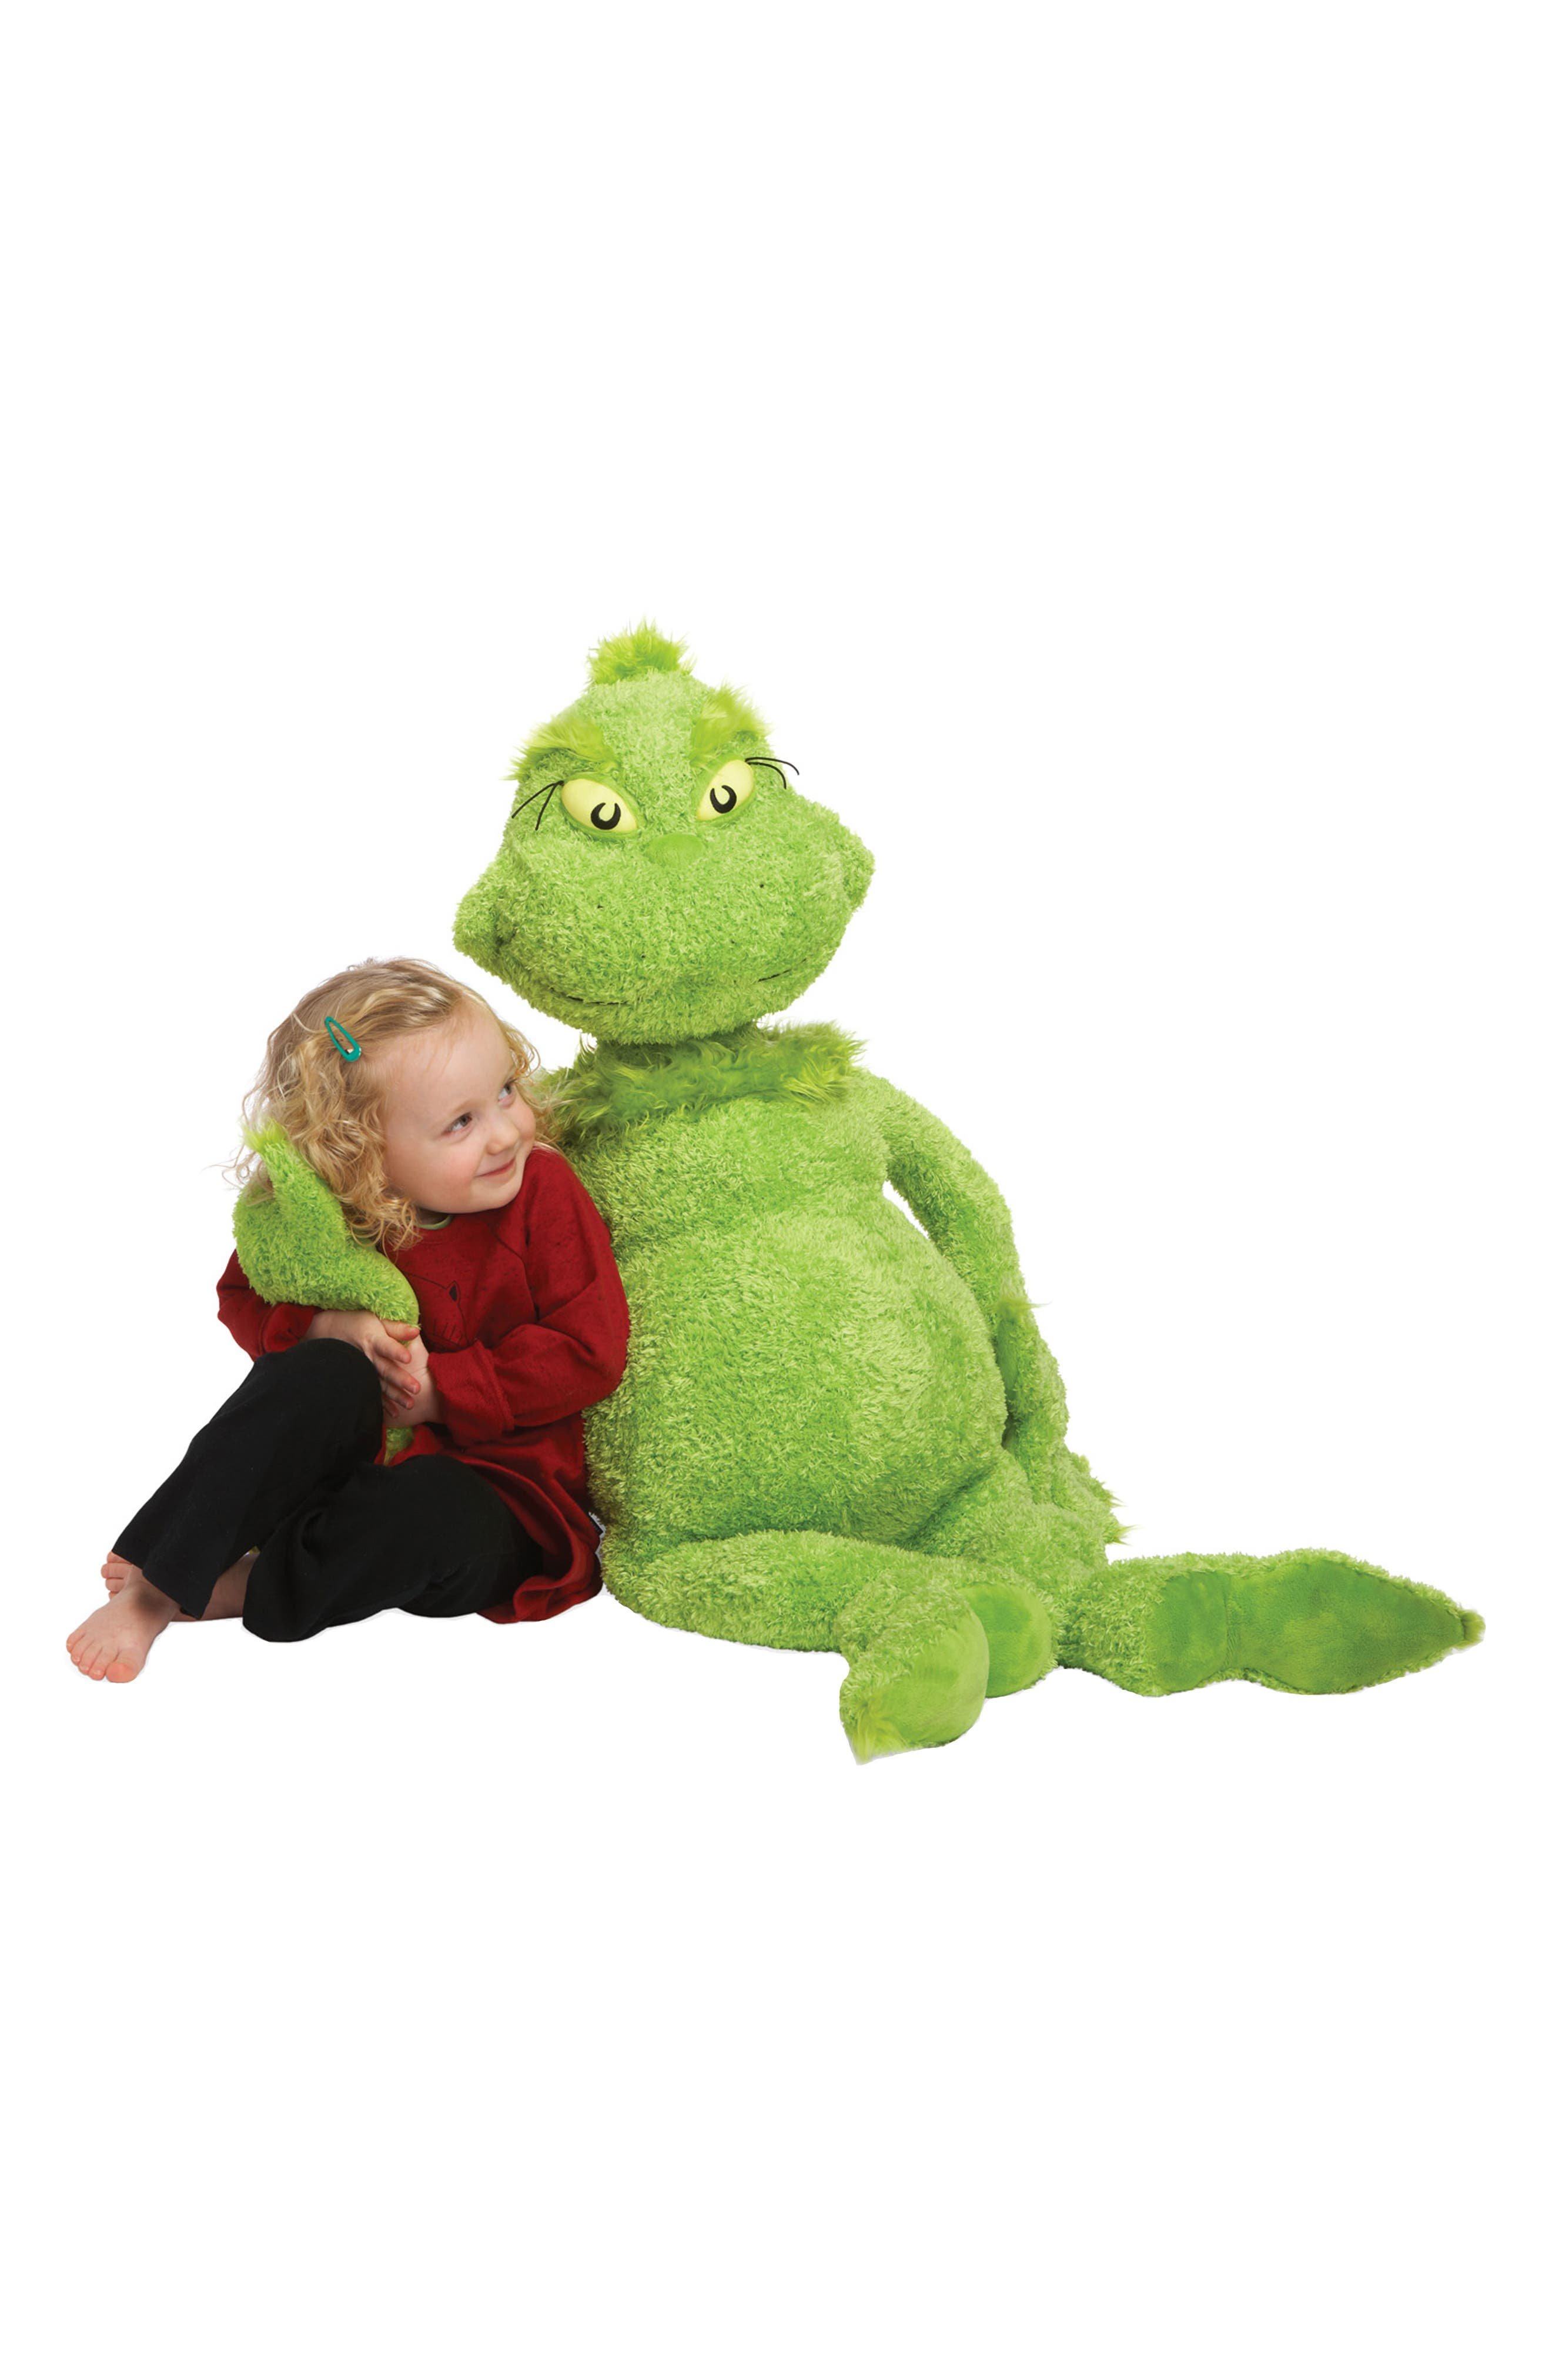 Dr. Seuss -The Grinch Stuffed Toy,                             Alternate thumbnail 3, color,                             Green